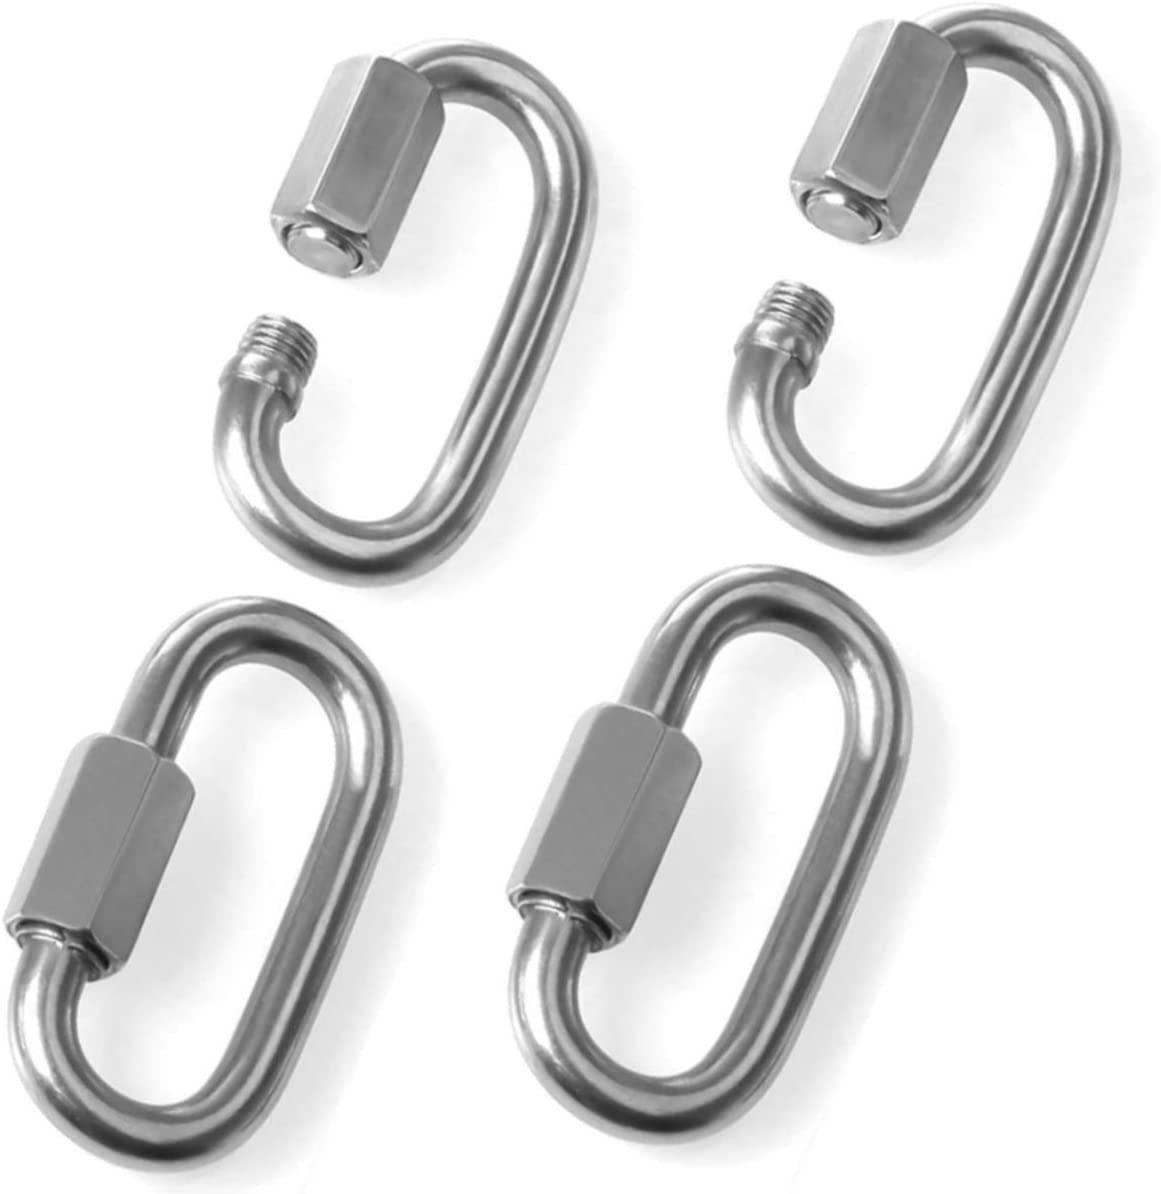 Set of 4 Stainless Steel 5//16 Inch Quick Link Oval 8mm D Shape Carabiner Clip Chain Connector Screw Lock Ring